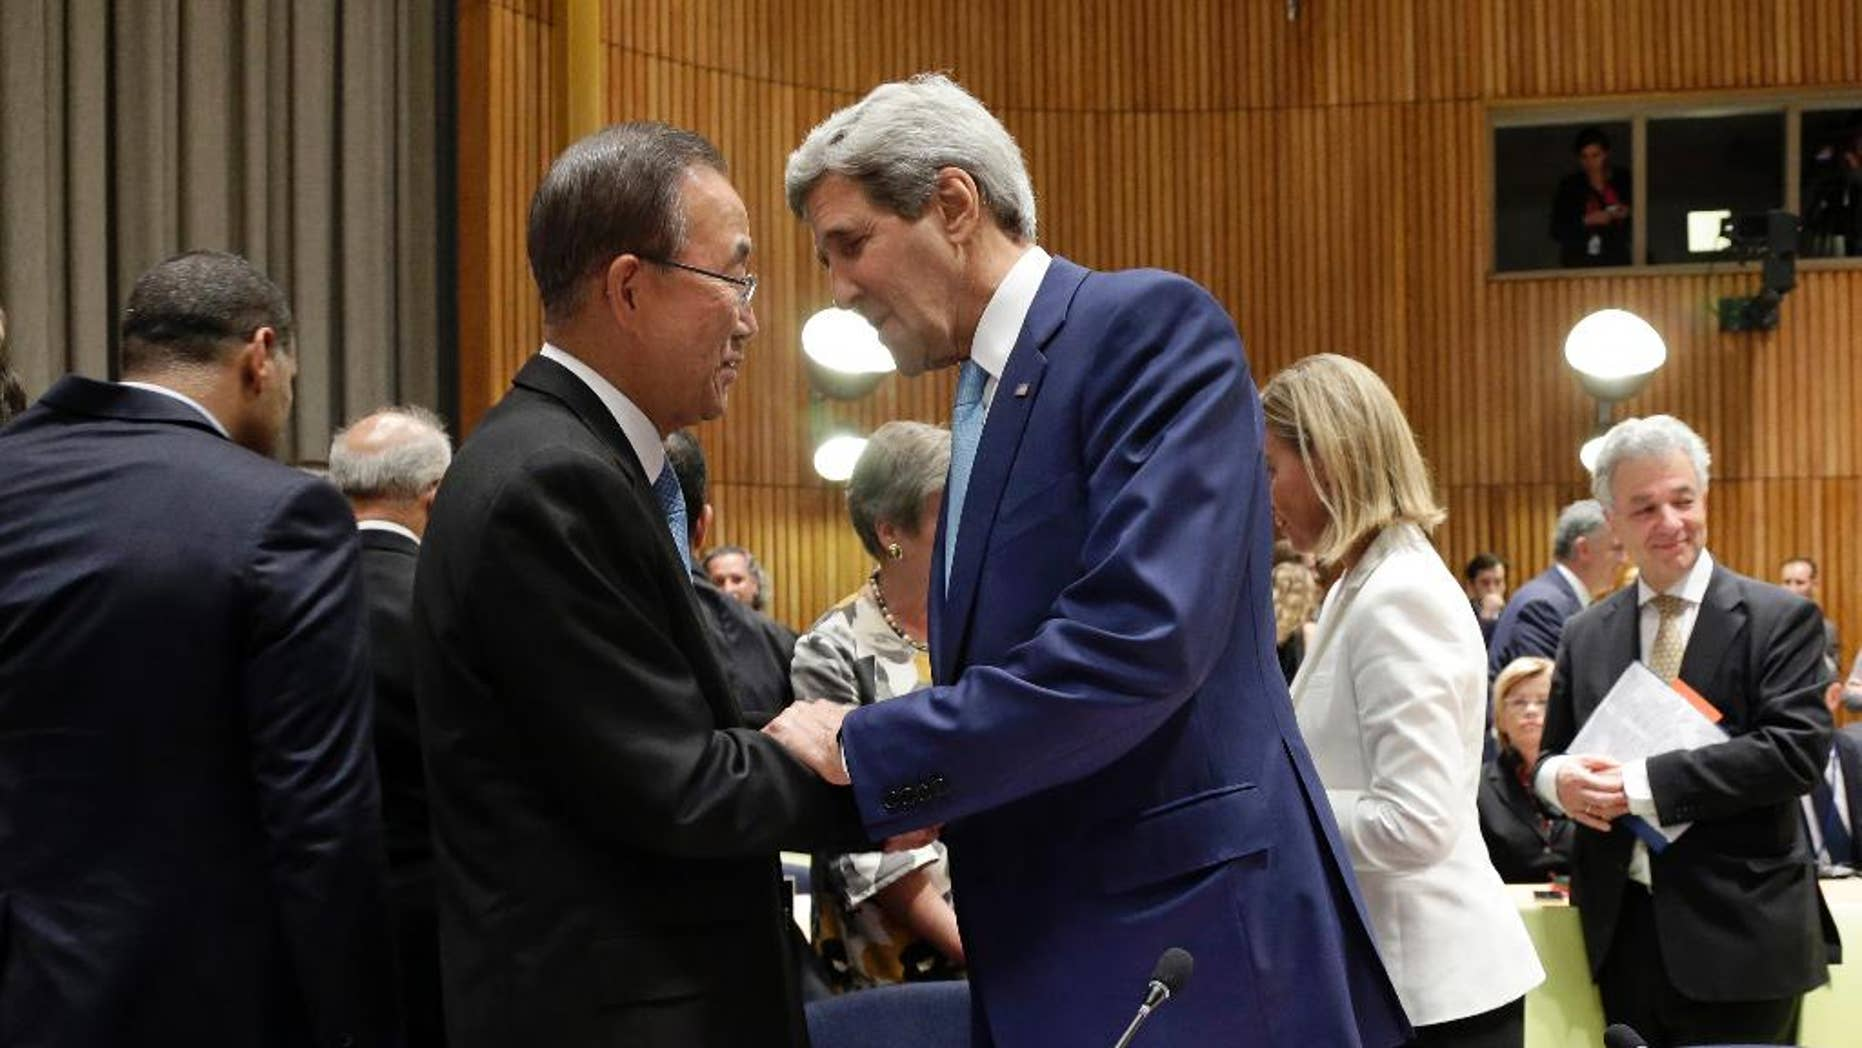 United Nations Secretary General Ban Ki-moon, left, greets U.S. Secretary of State John Kerry before the seventh Ministerial Meeting of the Comprehensive Nuclear-Test-Ban Treaty (CTBT) during the 69th session of the United Nations General Assembly at U.N. headquarters on Friday, Sept. 26, 2014. The meeting was co-organized by Australia, Canada, Finland, Germany, Japan and the Netherlands. (AP Photo/Pool, Jason Szenes)